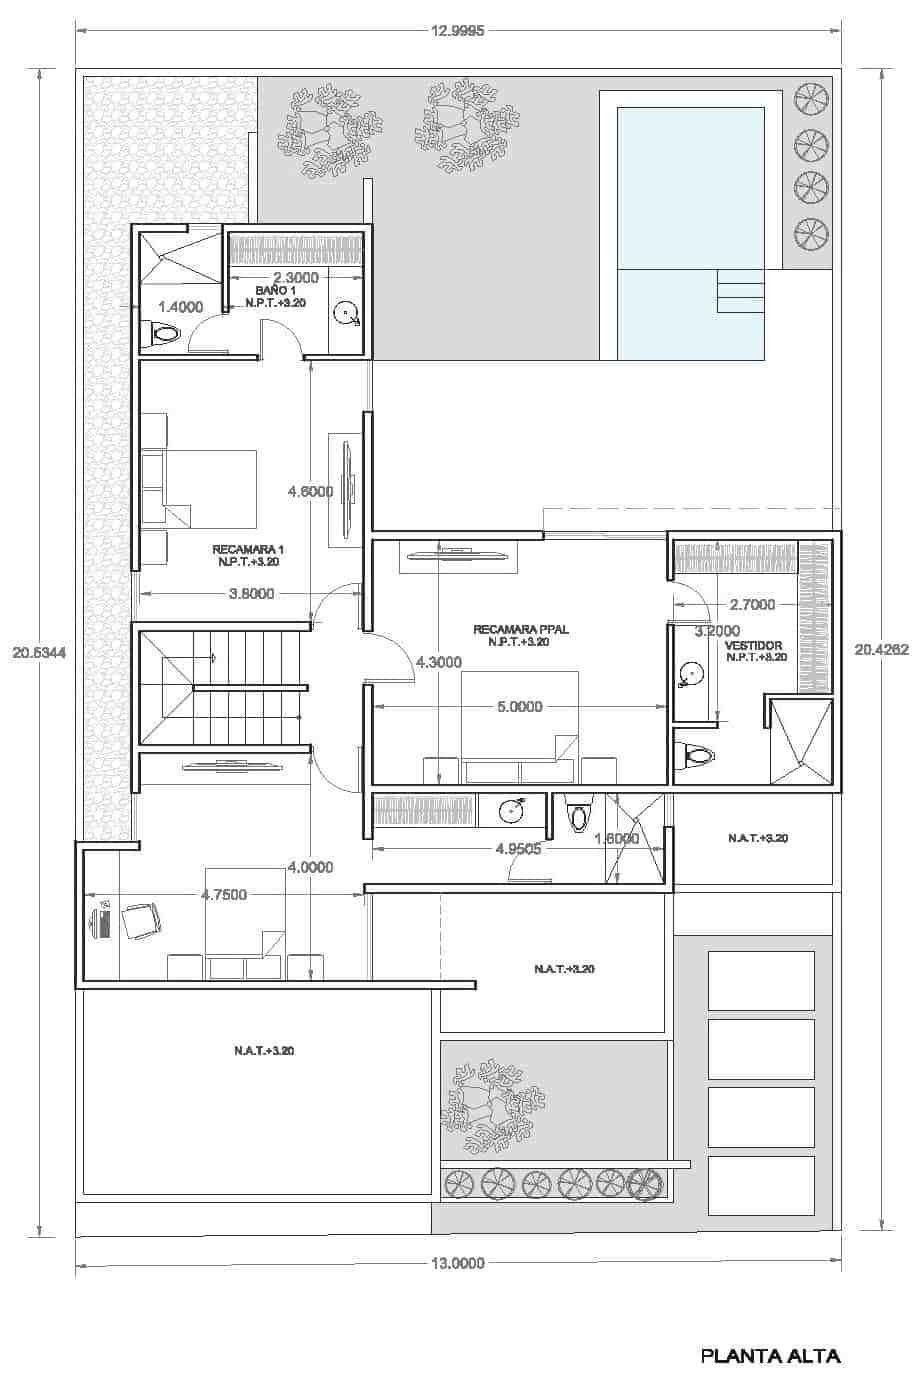 Smarthomefloors security cameras for home architecture plan house plans flooring how also pin by ceci enciso on rh pinterest